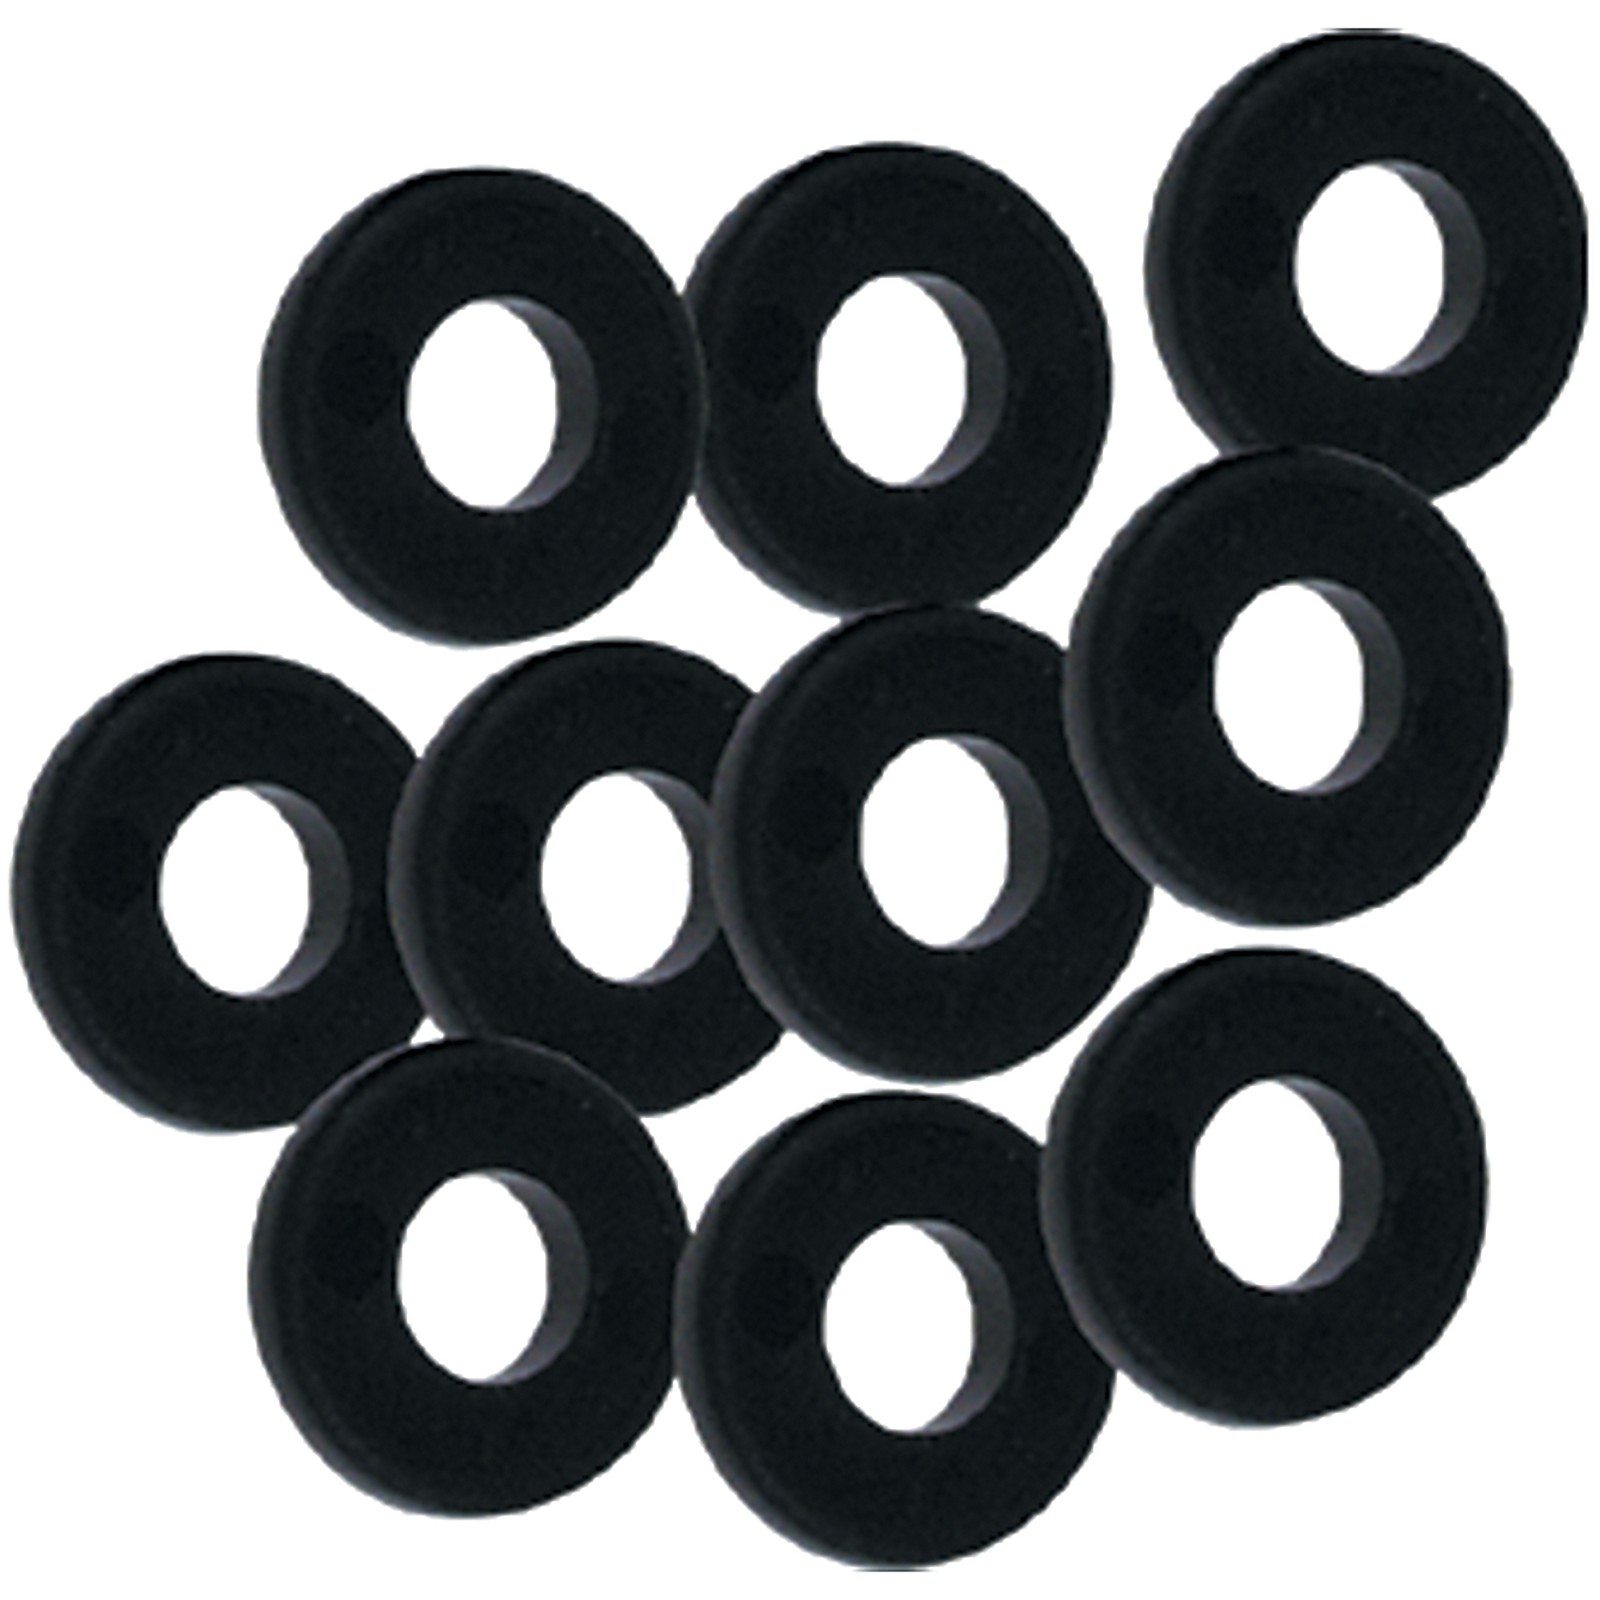 Gibraltar ABS Tension Rod Washers